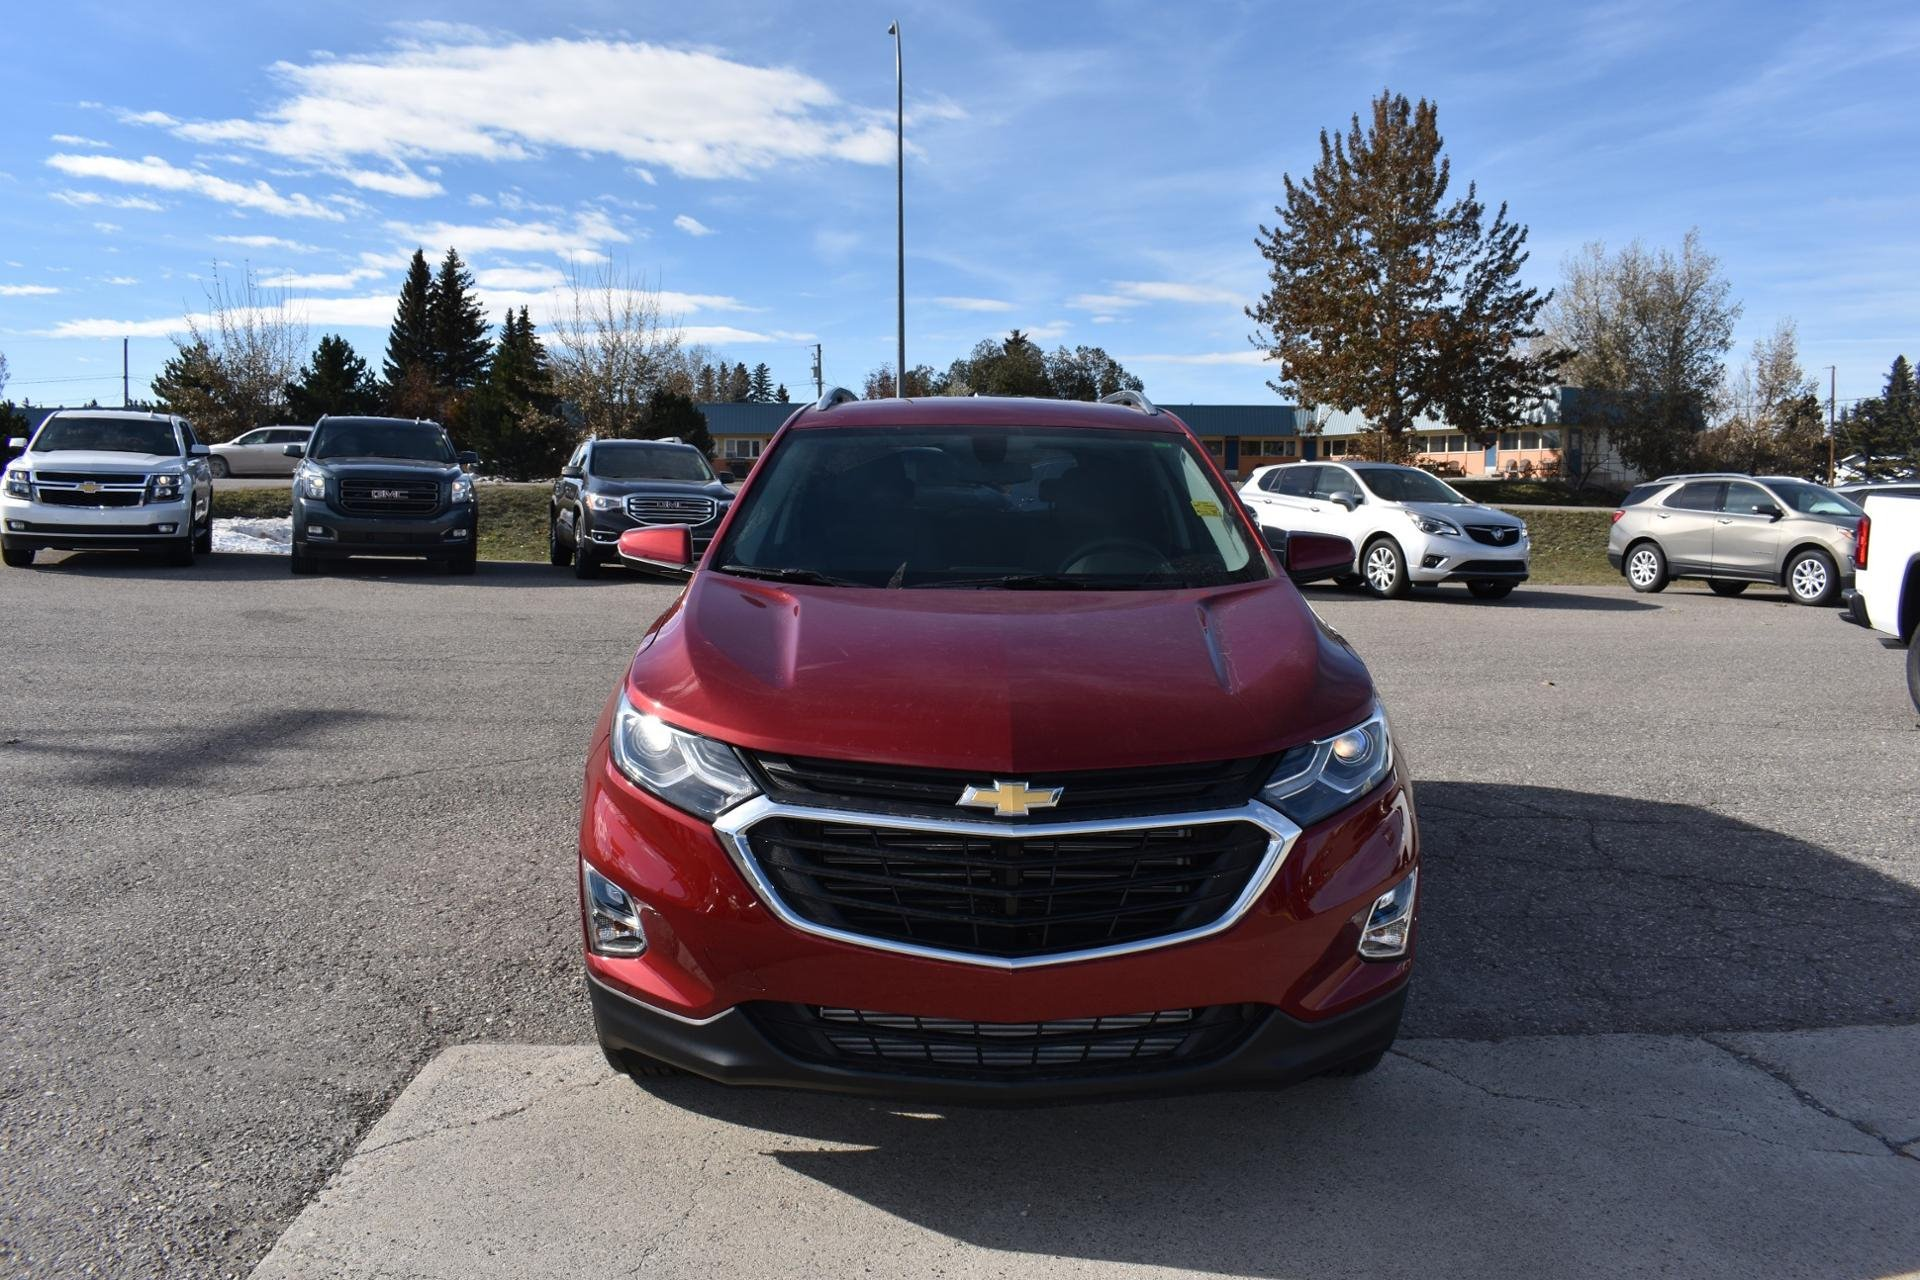 New 2019 Chevrolet-Equinox LT Equinox LT for sale $27,200 at M and V Leasing in Brooklyn NY 11223 1